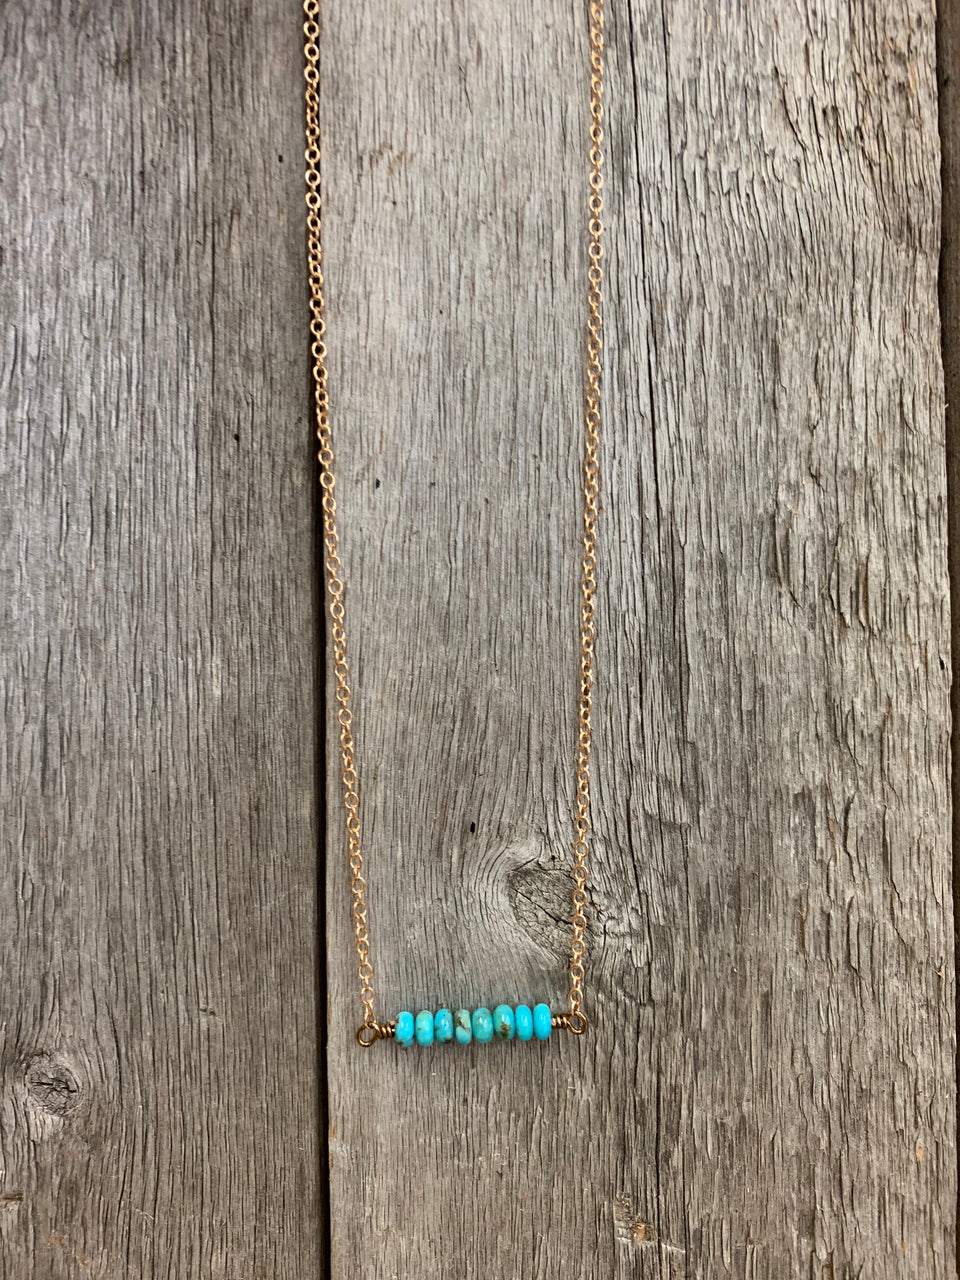 "J.Forks Designs necklace hanging on a wooden backdrop. The necklace is 16"" bronze chain with Kingman Turquoise center and bronze lobster claw clasp."